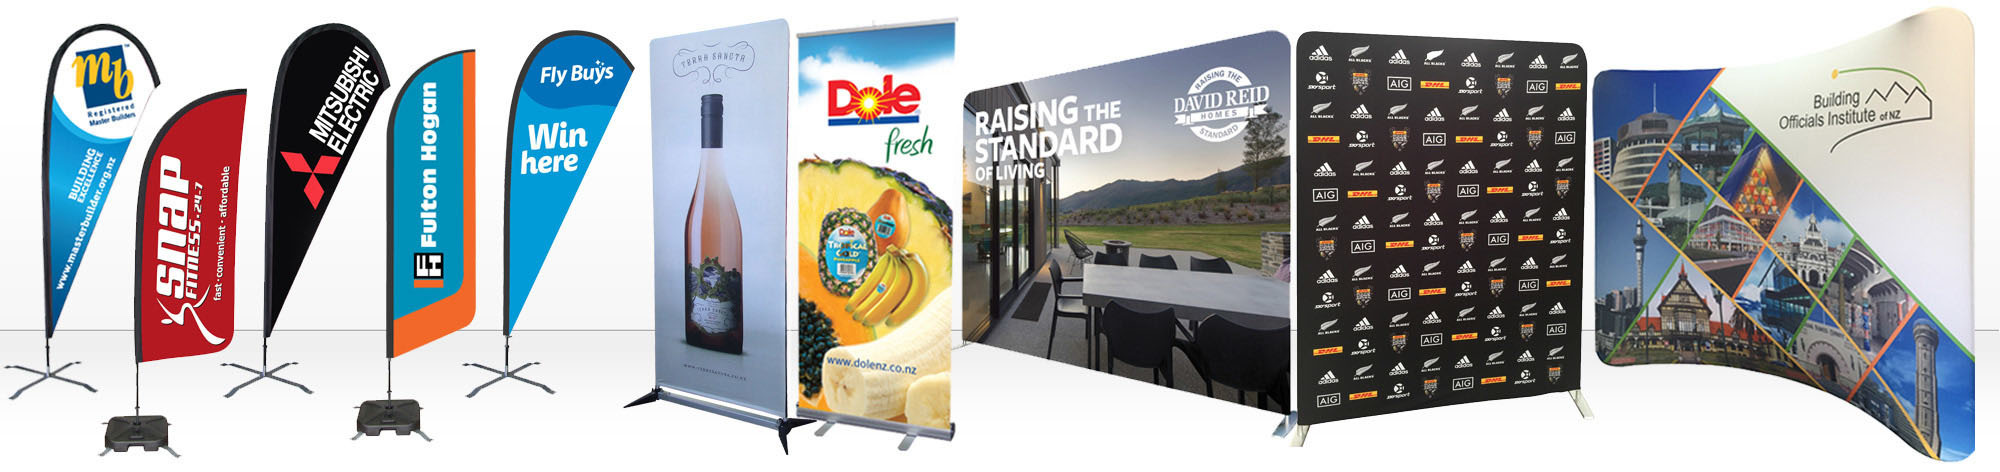 Advertising Your Business Across Nz With Custom Made Flags And Banners Has Never Been Easier